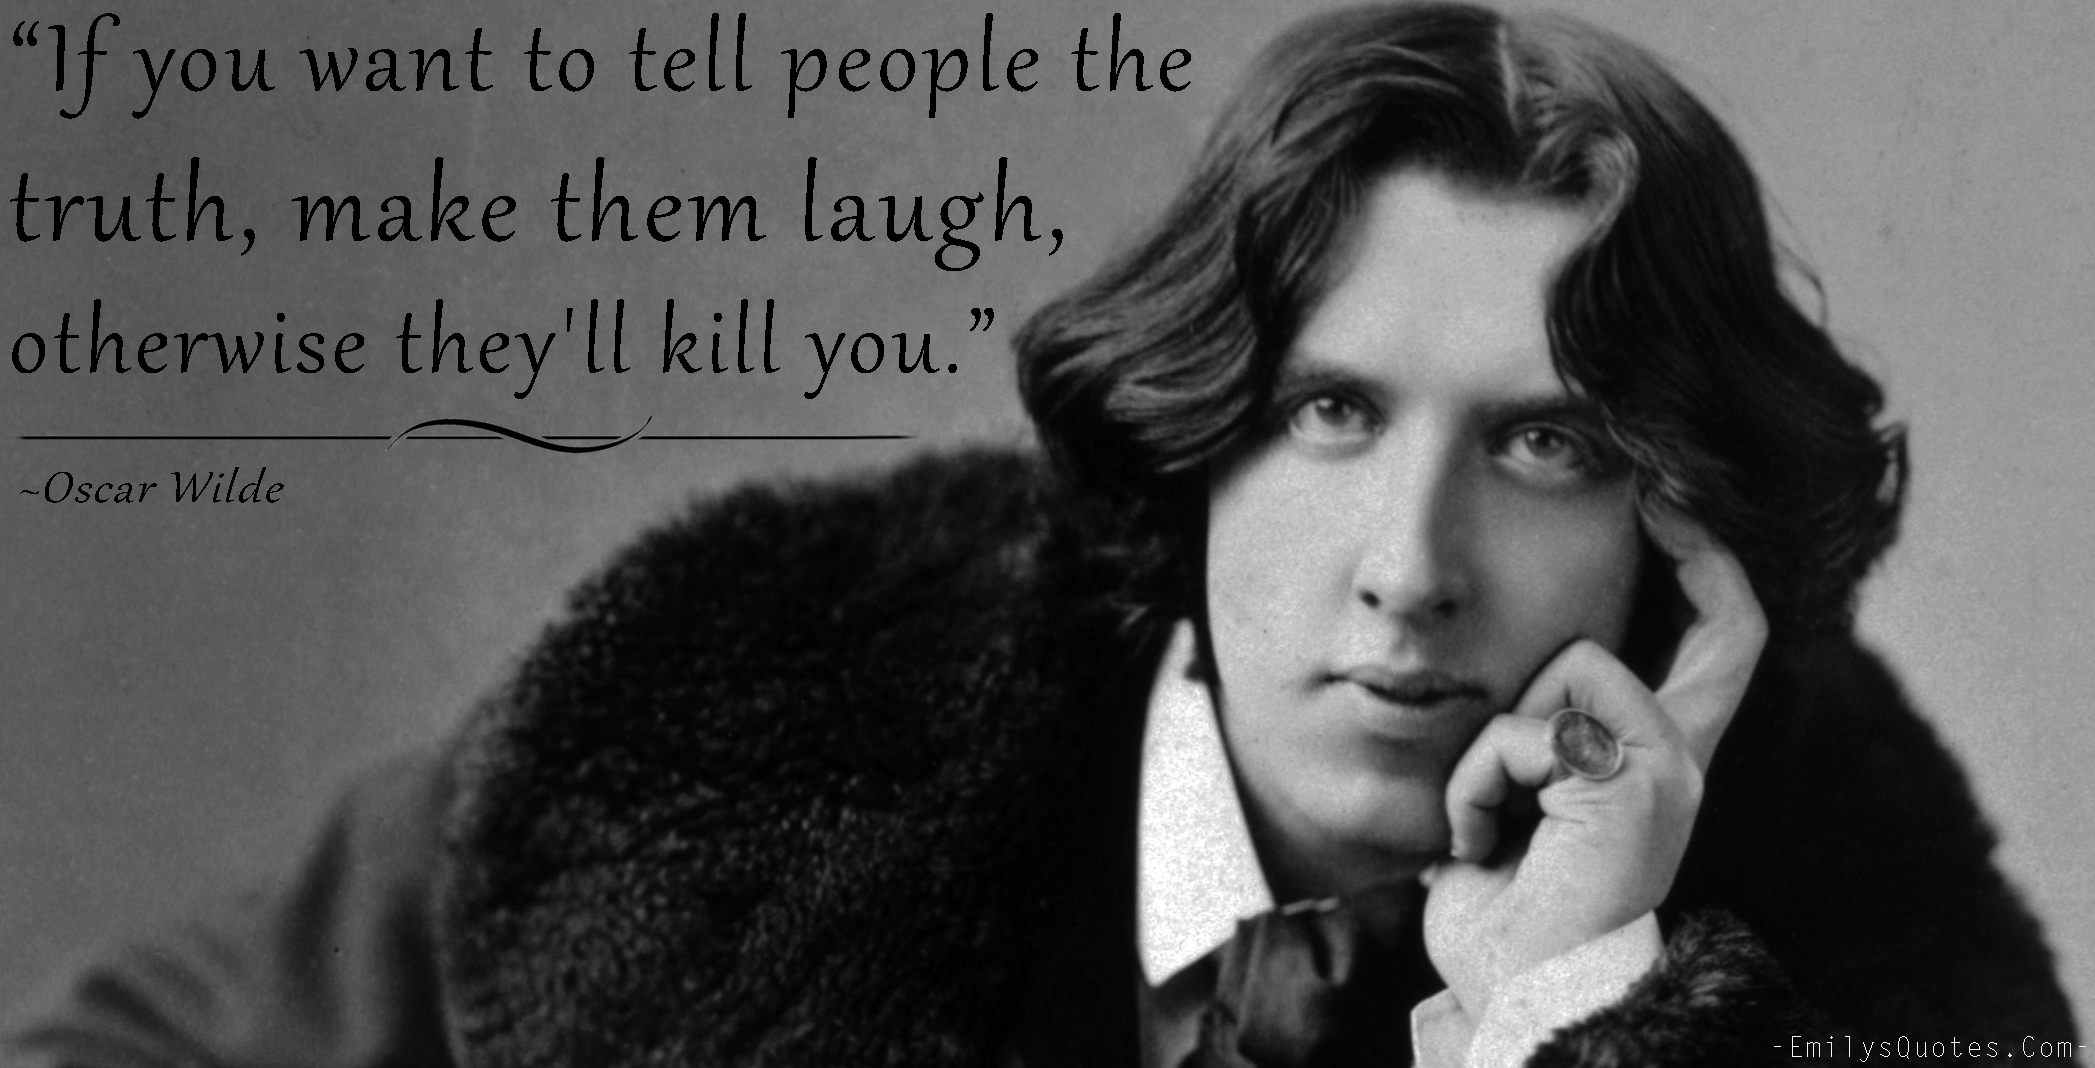 EmilysQuotes.Com - people, truth, funny, hate, communication,  Oscar Wilde